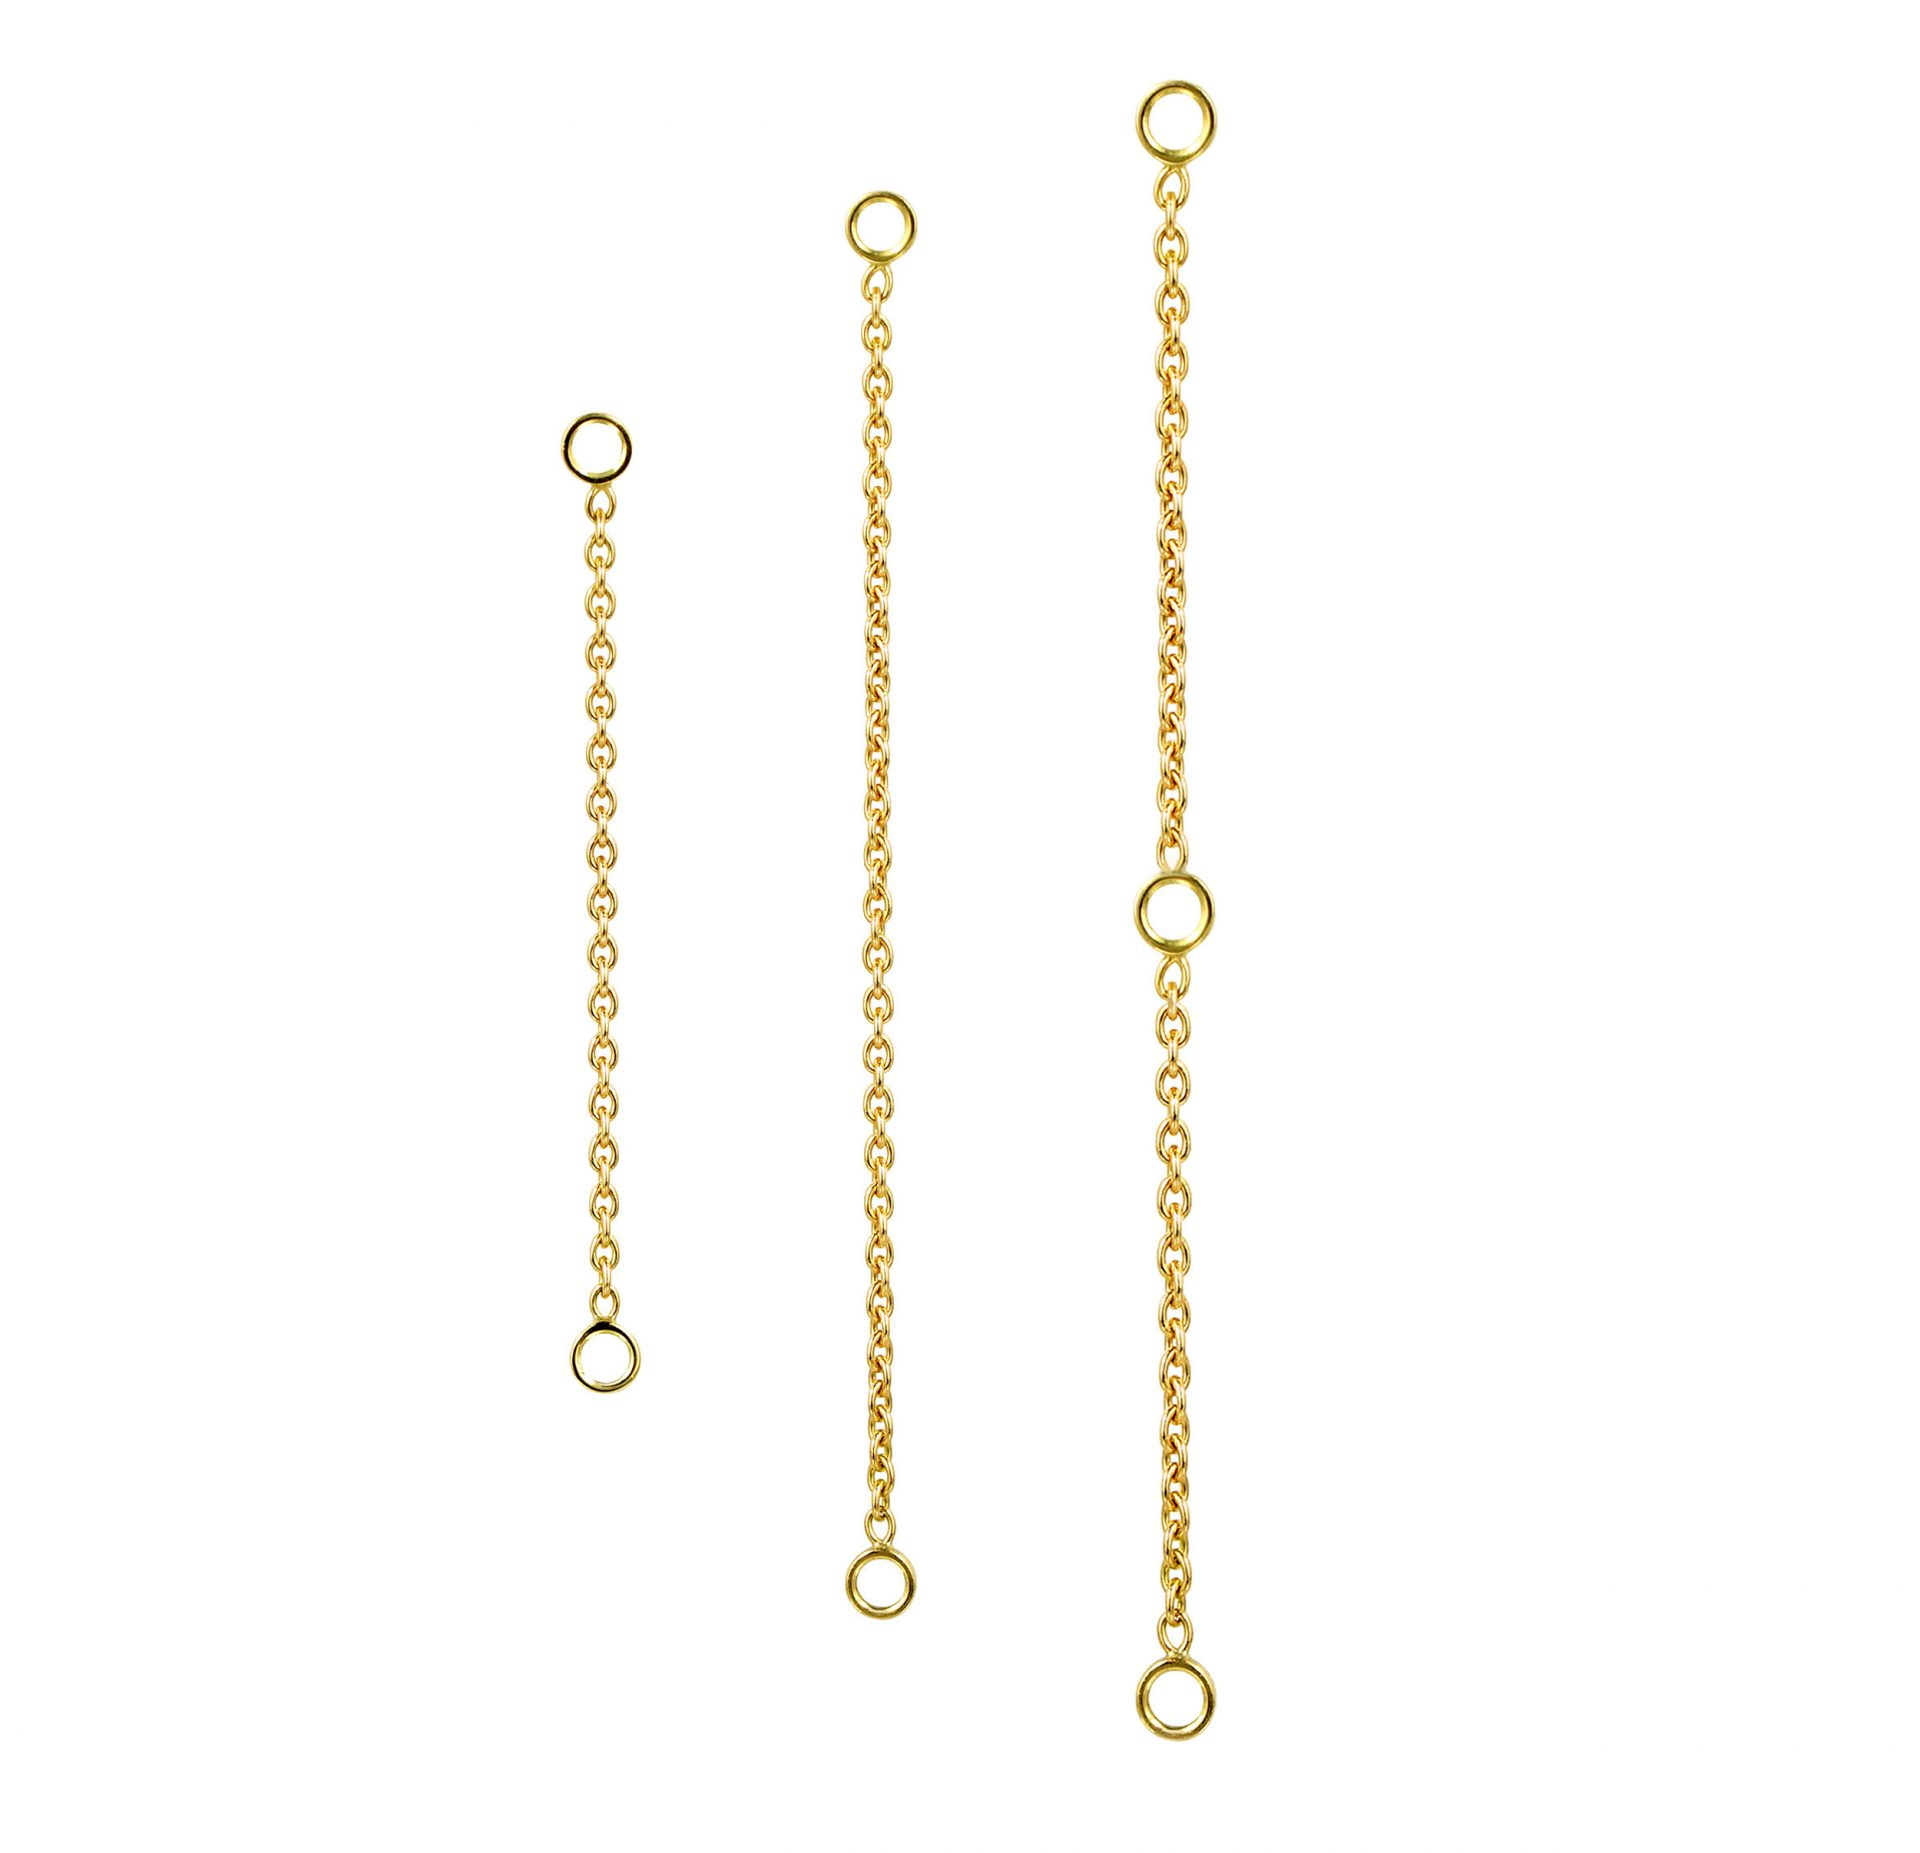 18k-White-Yellow-Gold-Triple-Jump-Chain-Transformer-for-Huggie-Hoops-Clickers-UK-Designer-Luxury-Piercings-Lena-Cohen